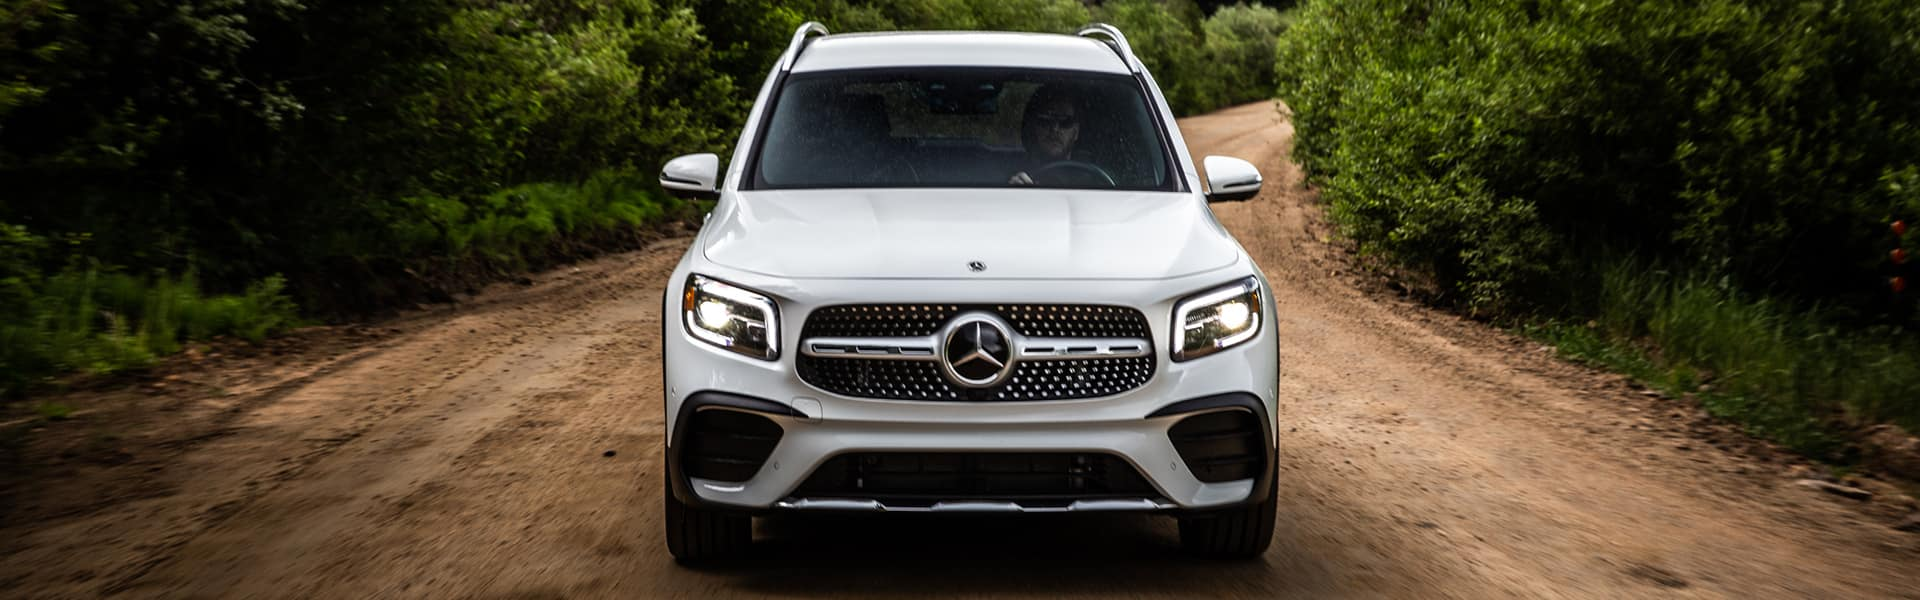 2020 Mercedes-Benz GLB styling